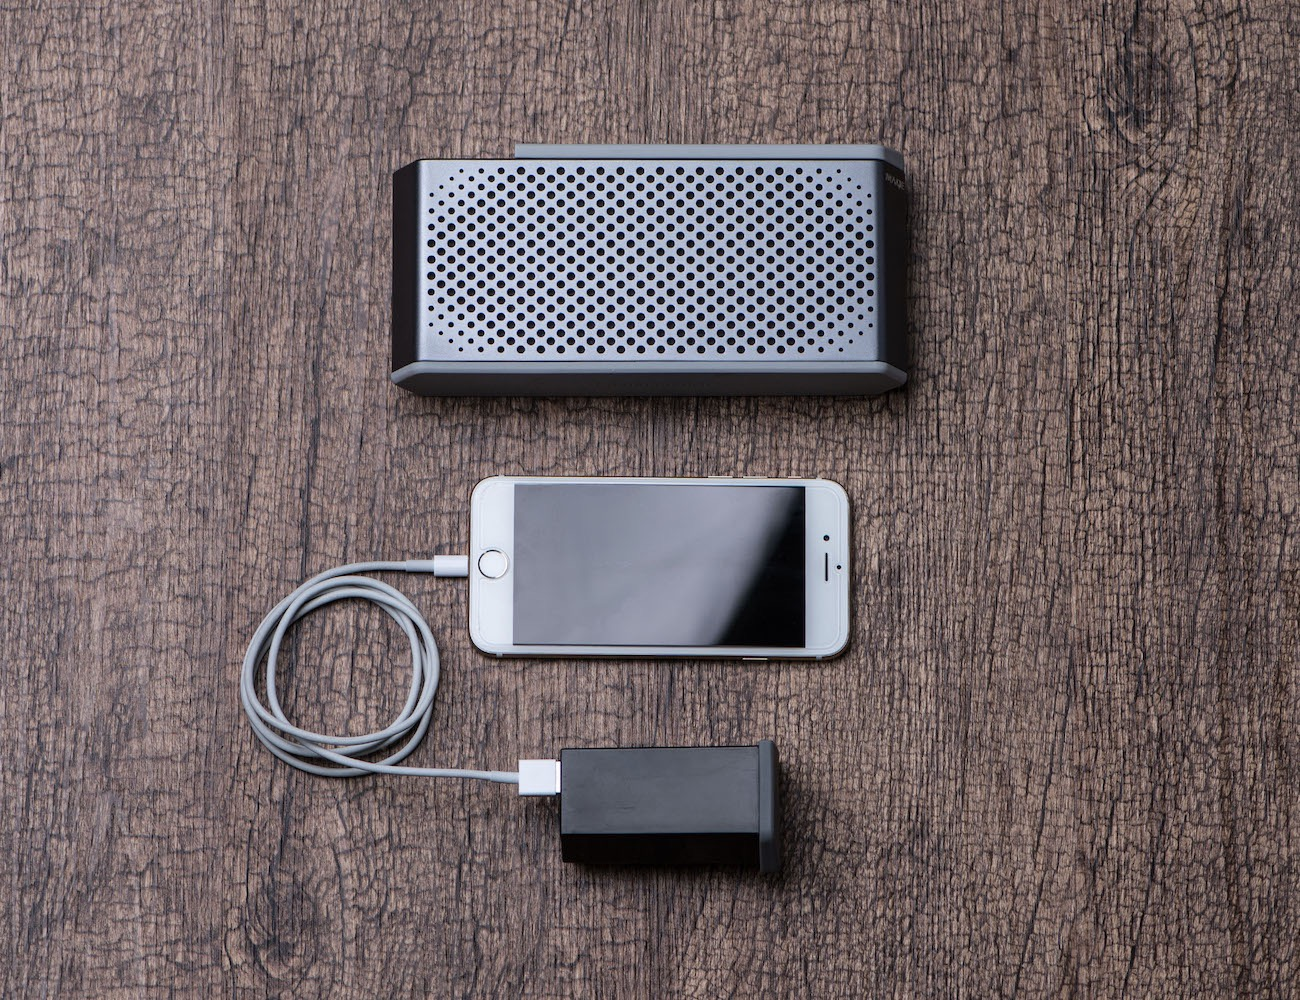 magnetic-power-bank-06